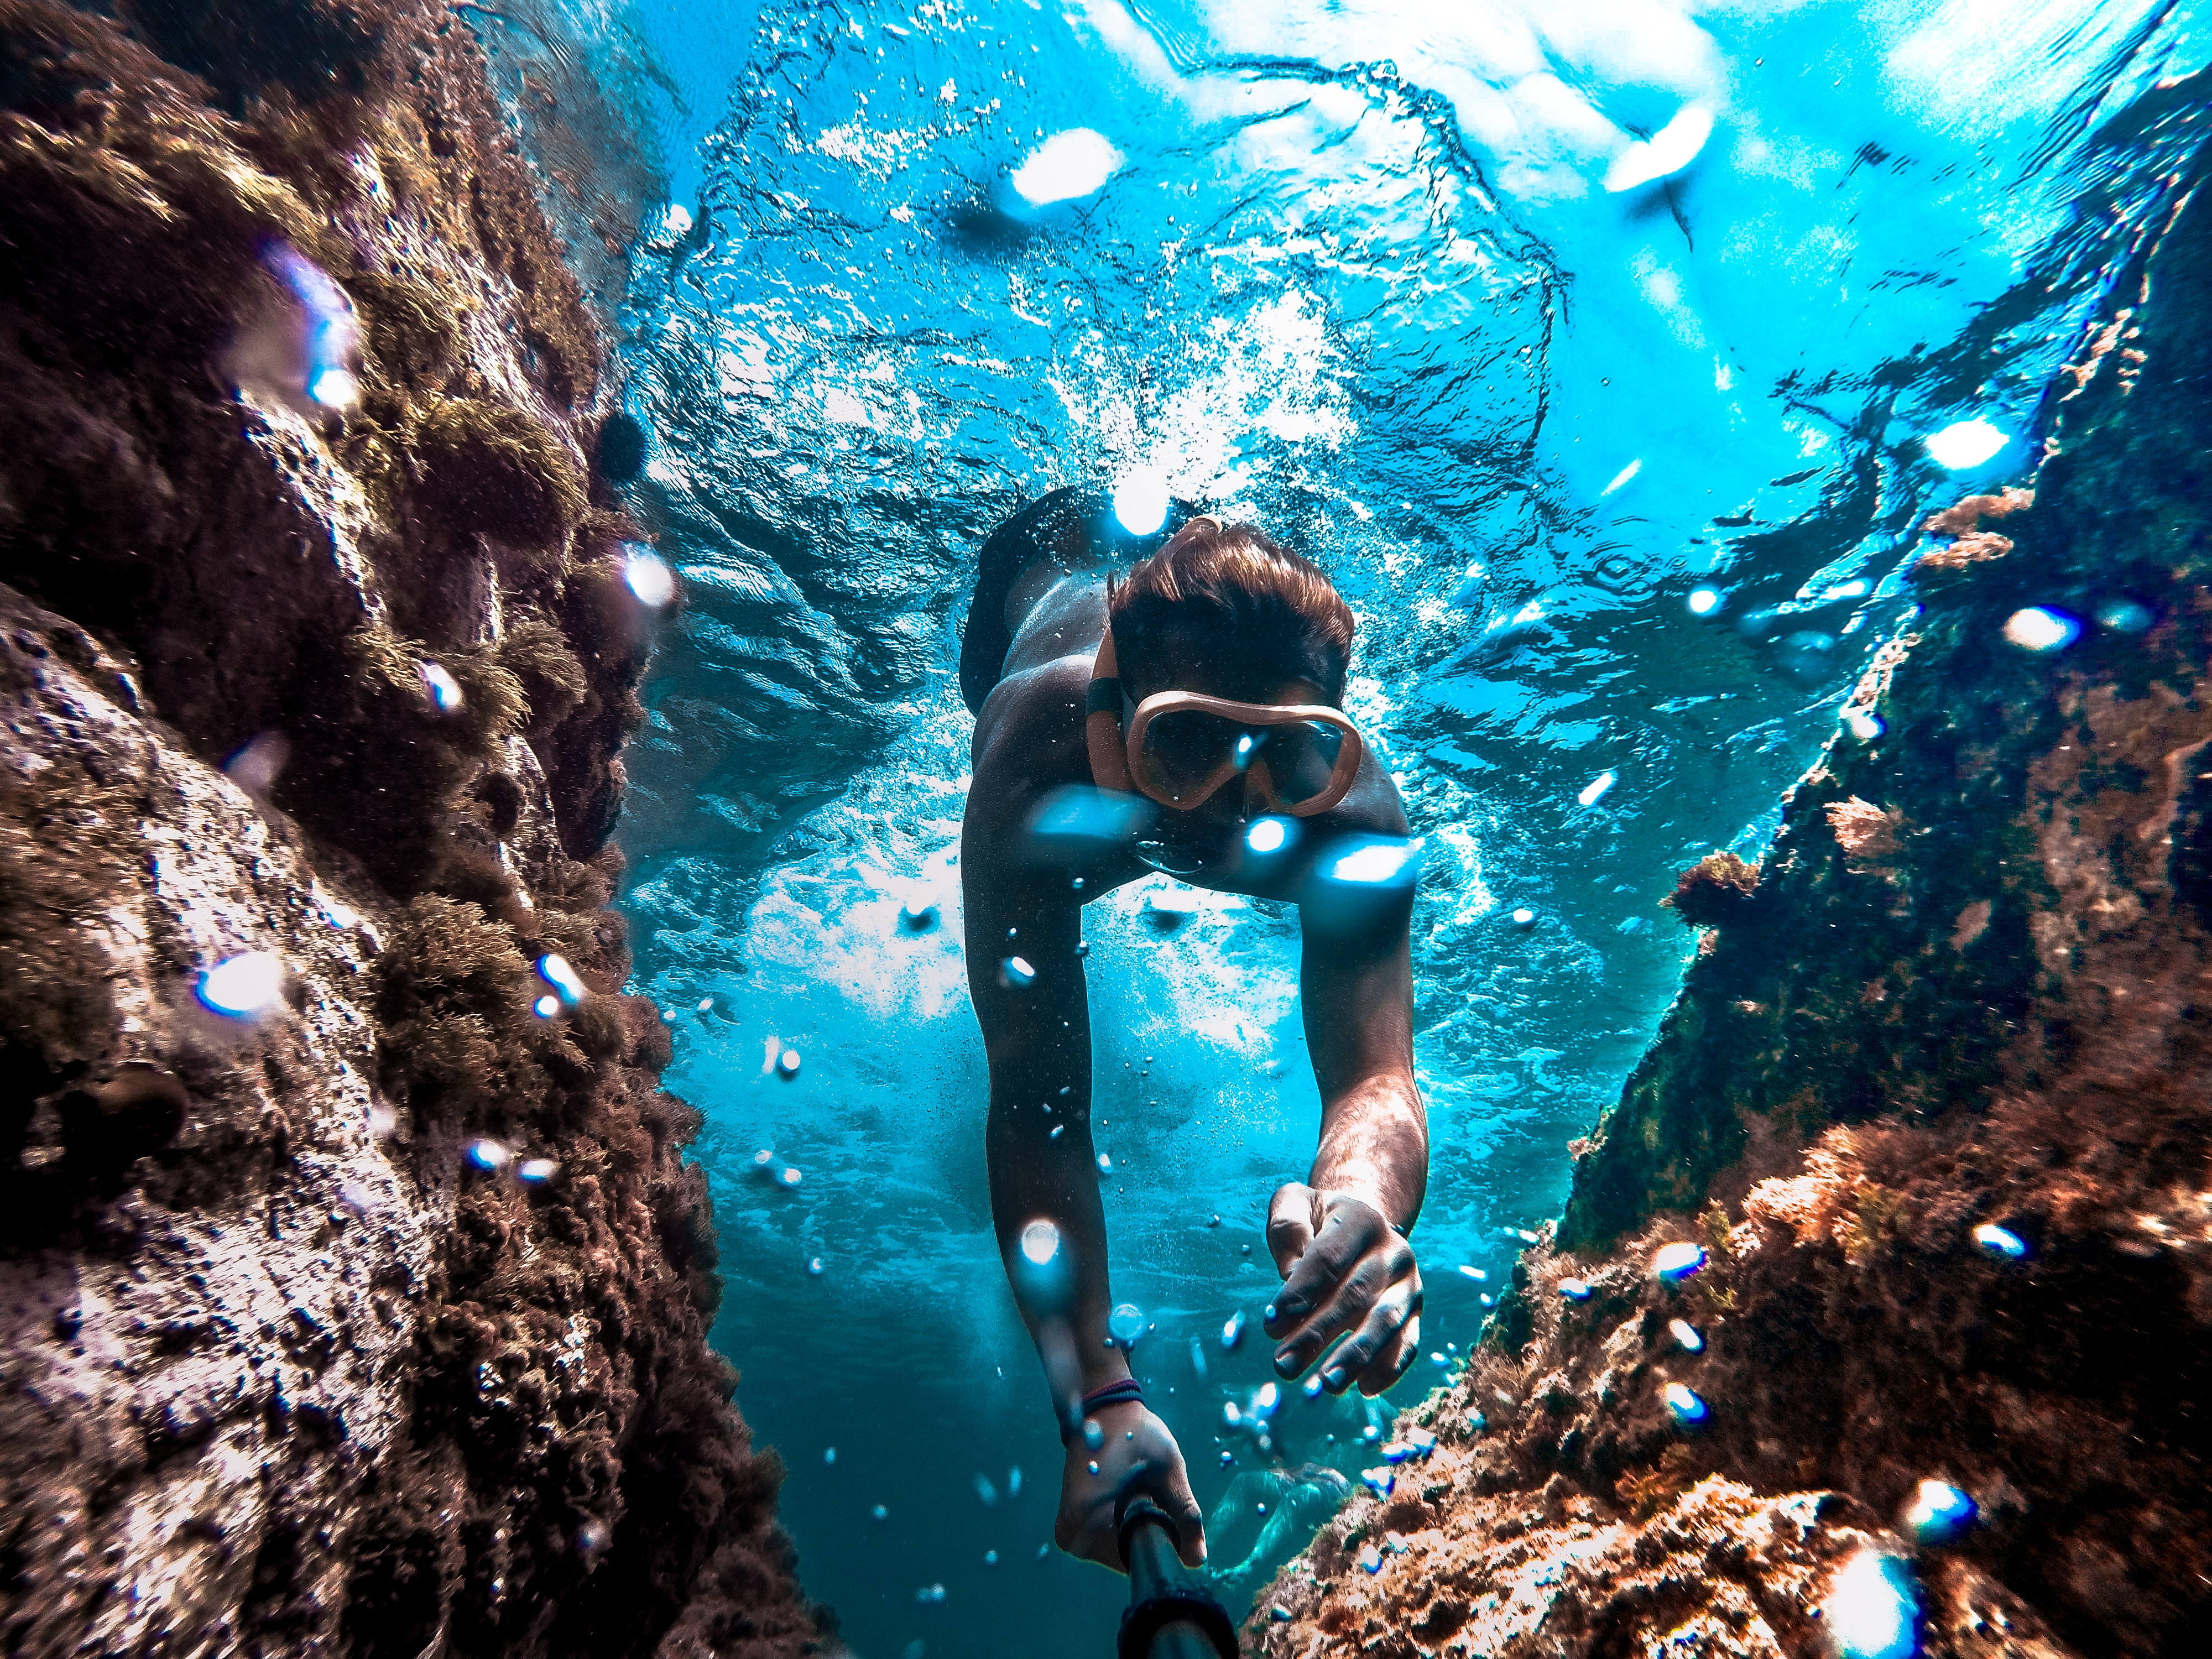 diver diving underwater